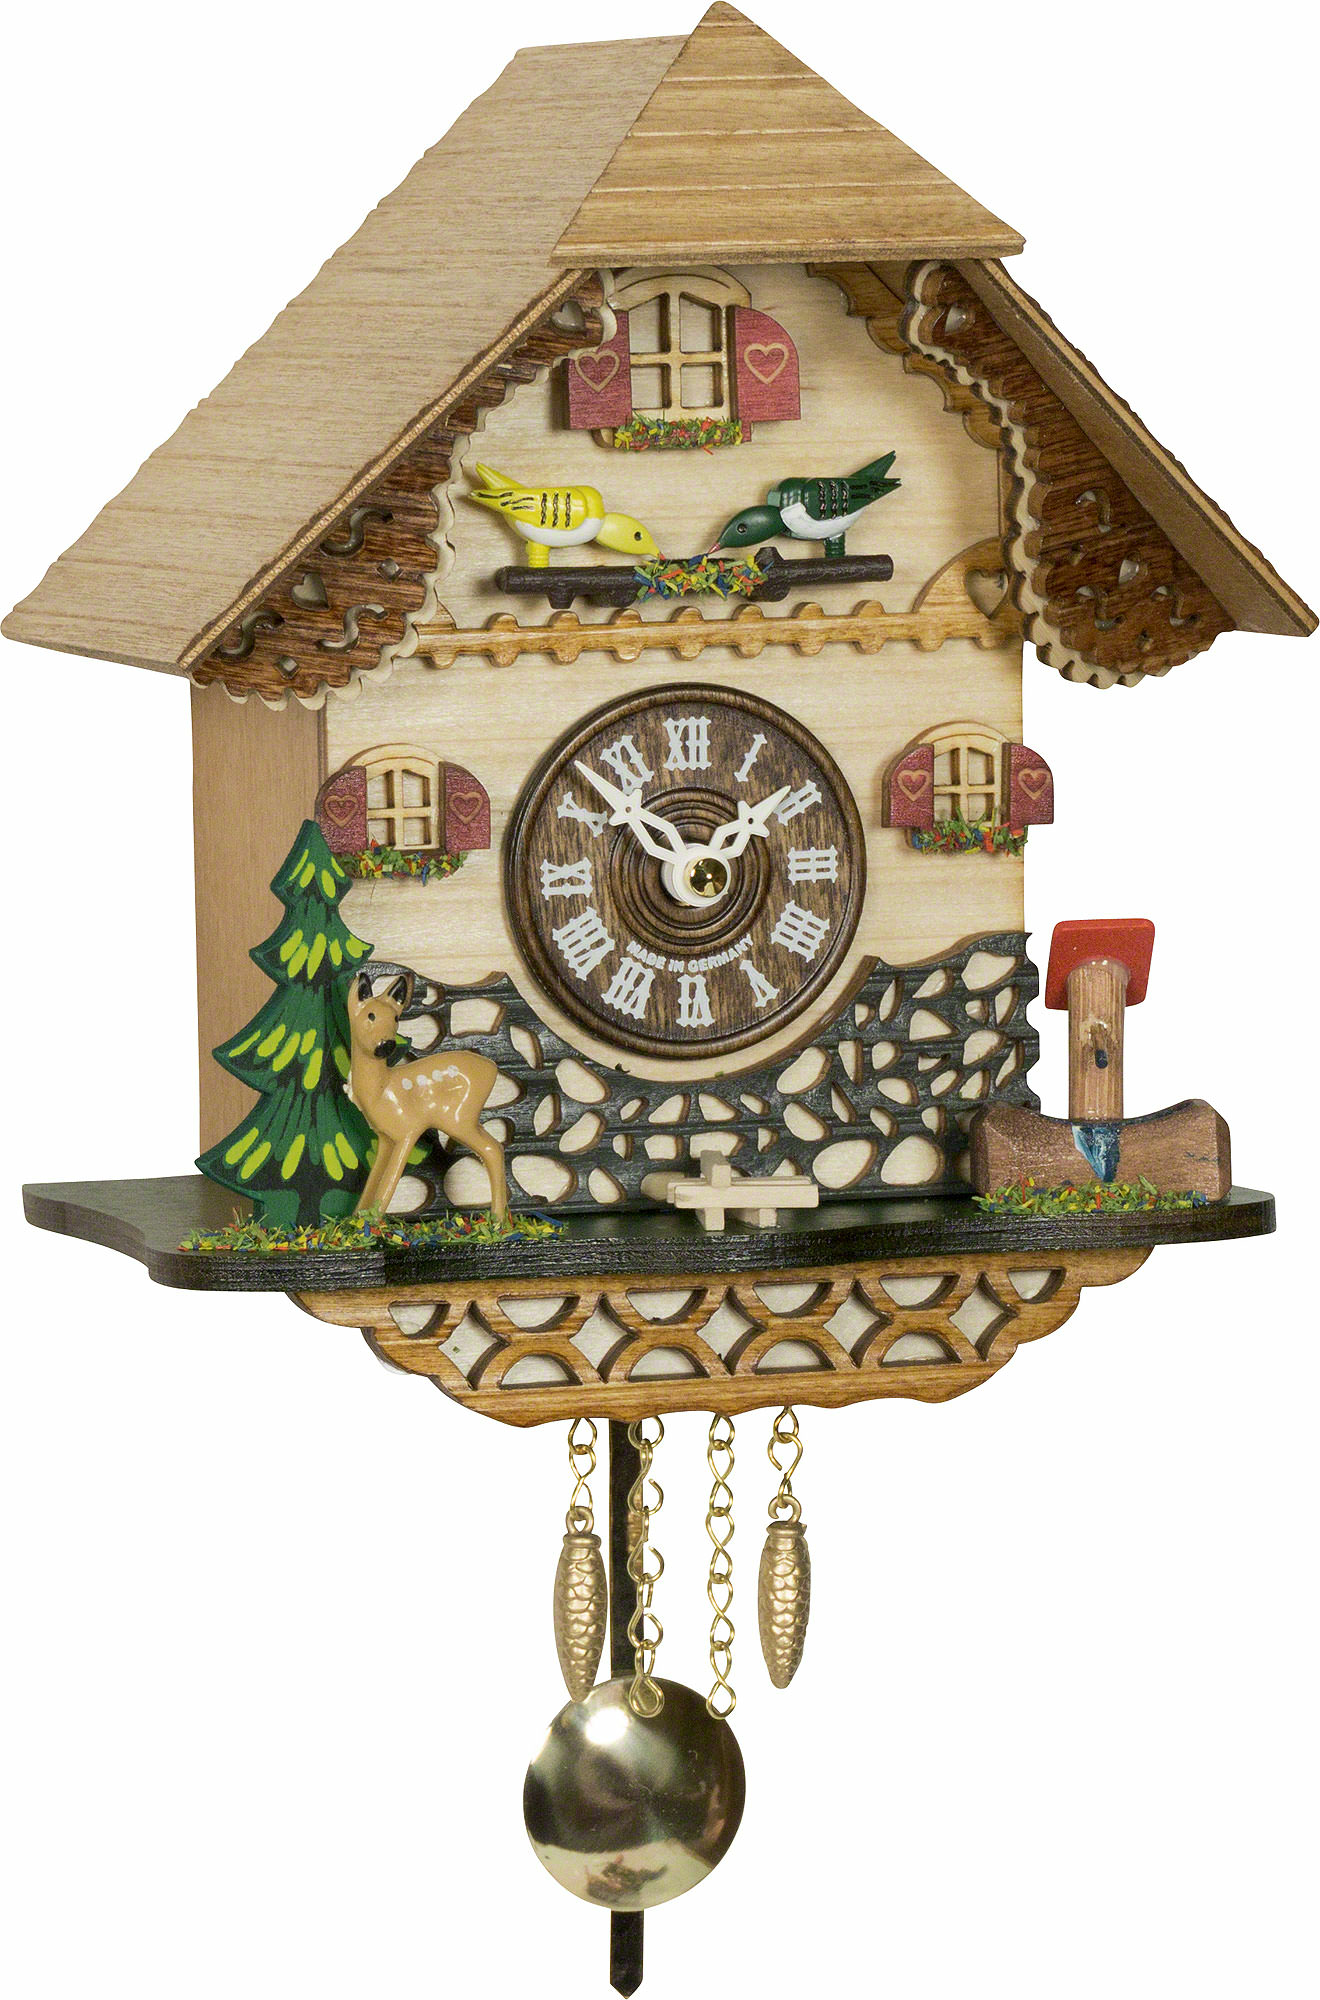 Cuckoo clock quartz movement black forest pendulum clock style 18cm by trenkle uhren 0342059pq - Cuckoo clock pendulum ...